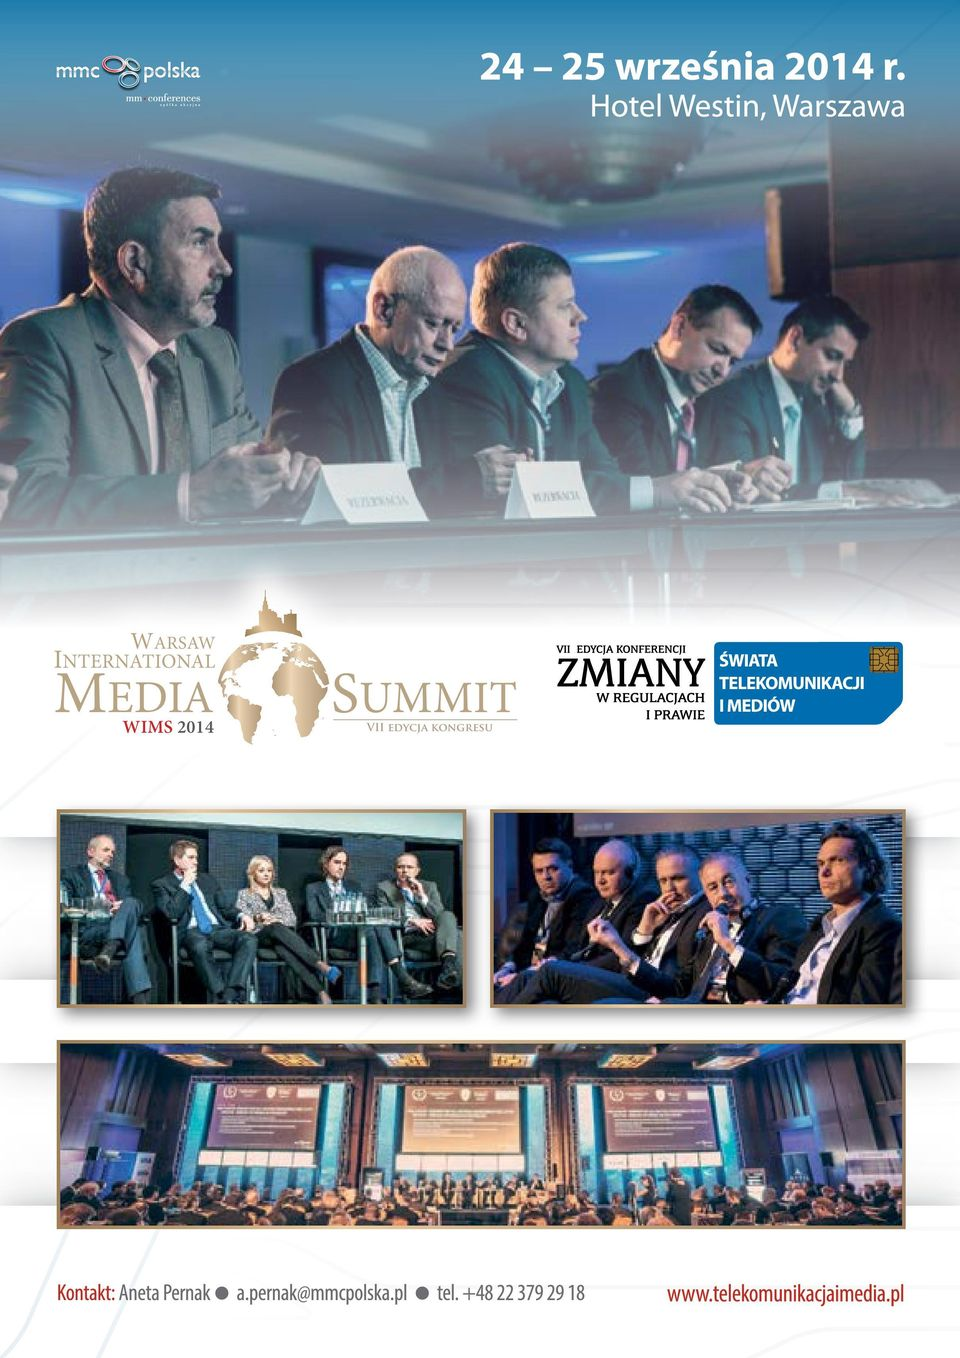 MEDIA WIMS 2014